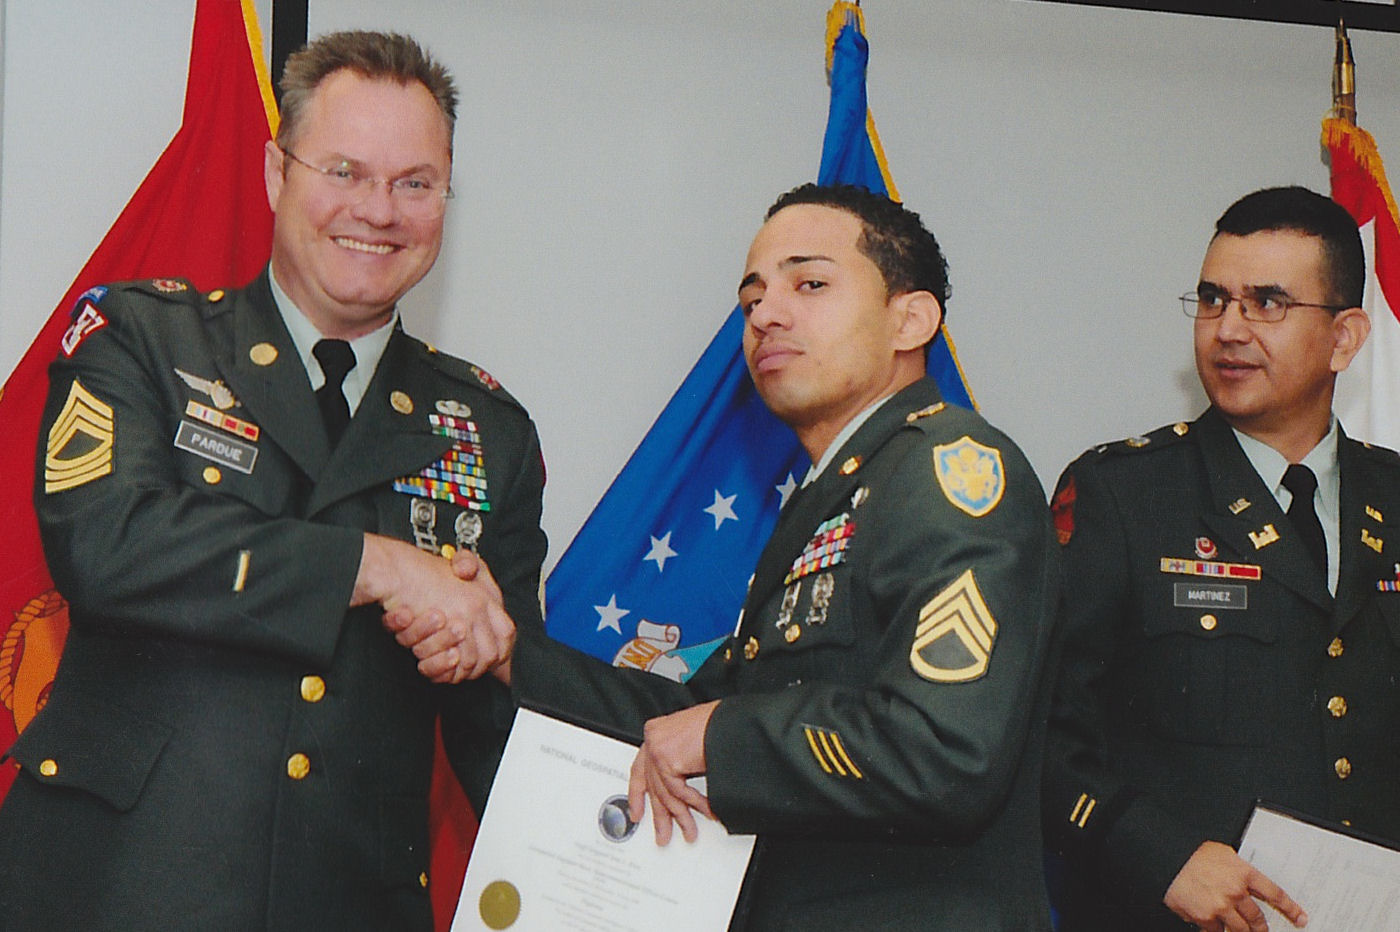 L-R MSG James Pardue, SSG Jose Rios and CW4 Angel Martinez